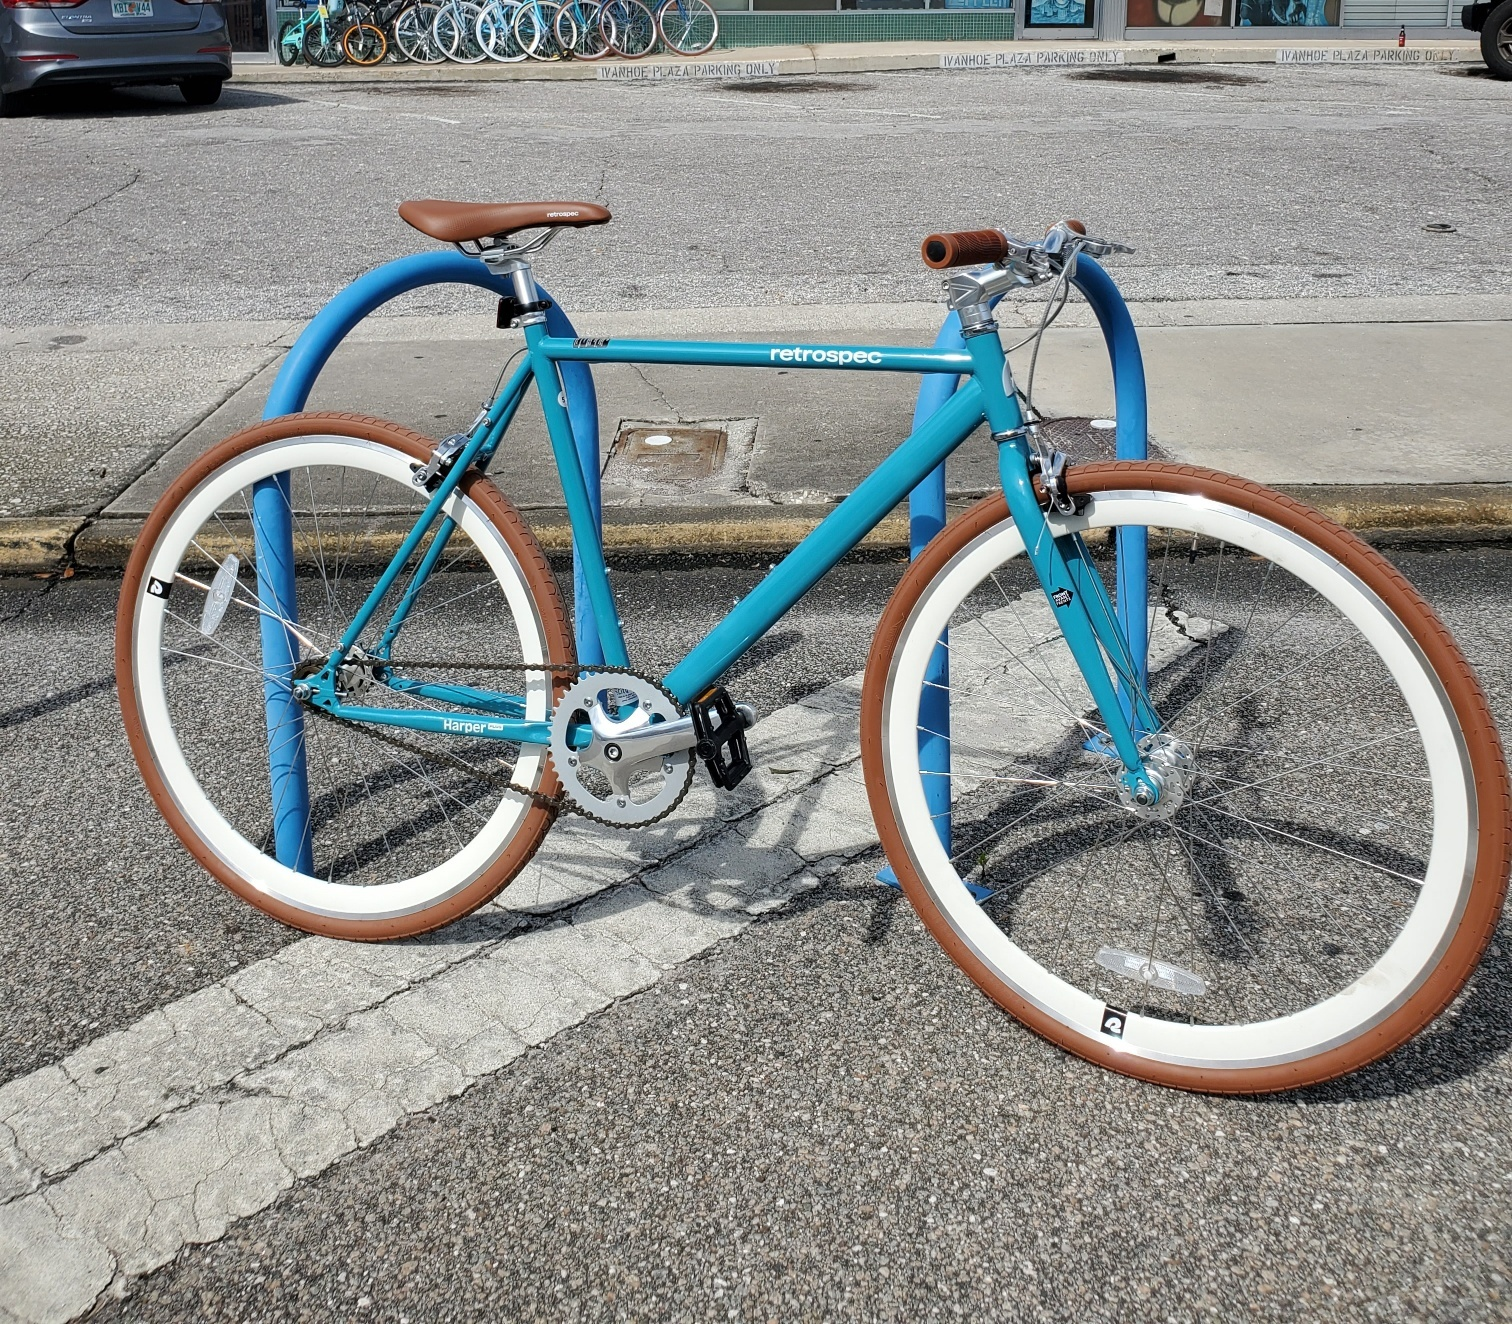 Our best selling fixie/single speed has been recreated!